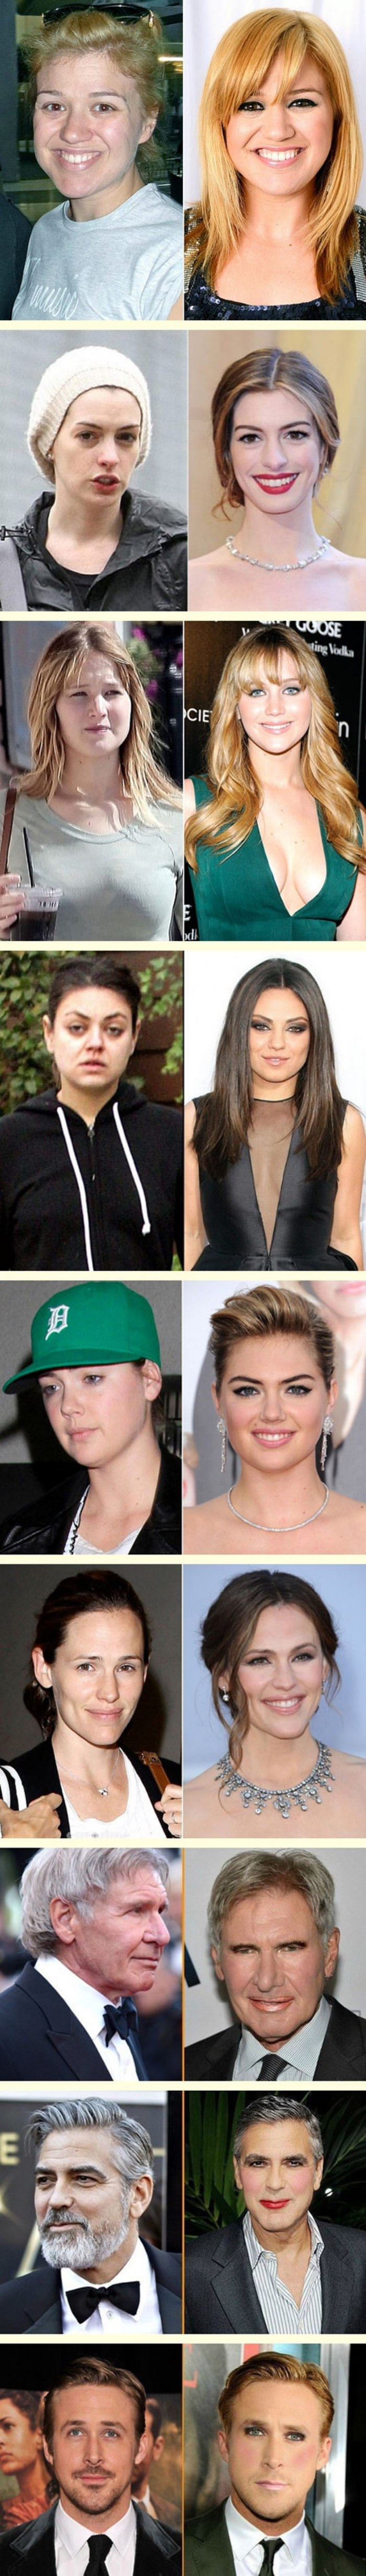 some celebs with makeup funny picture